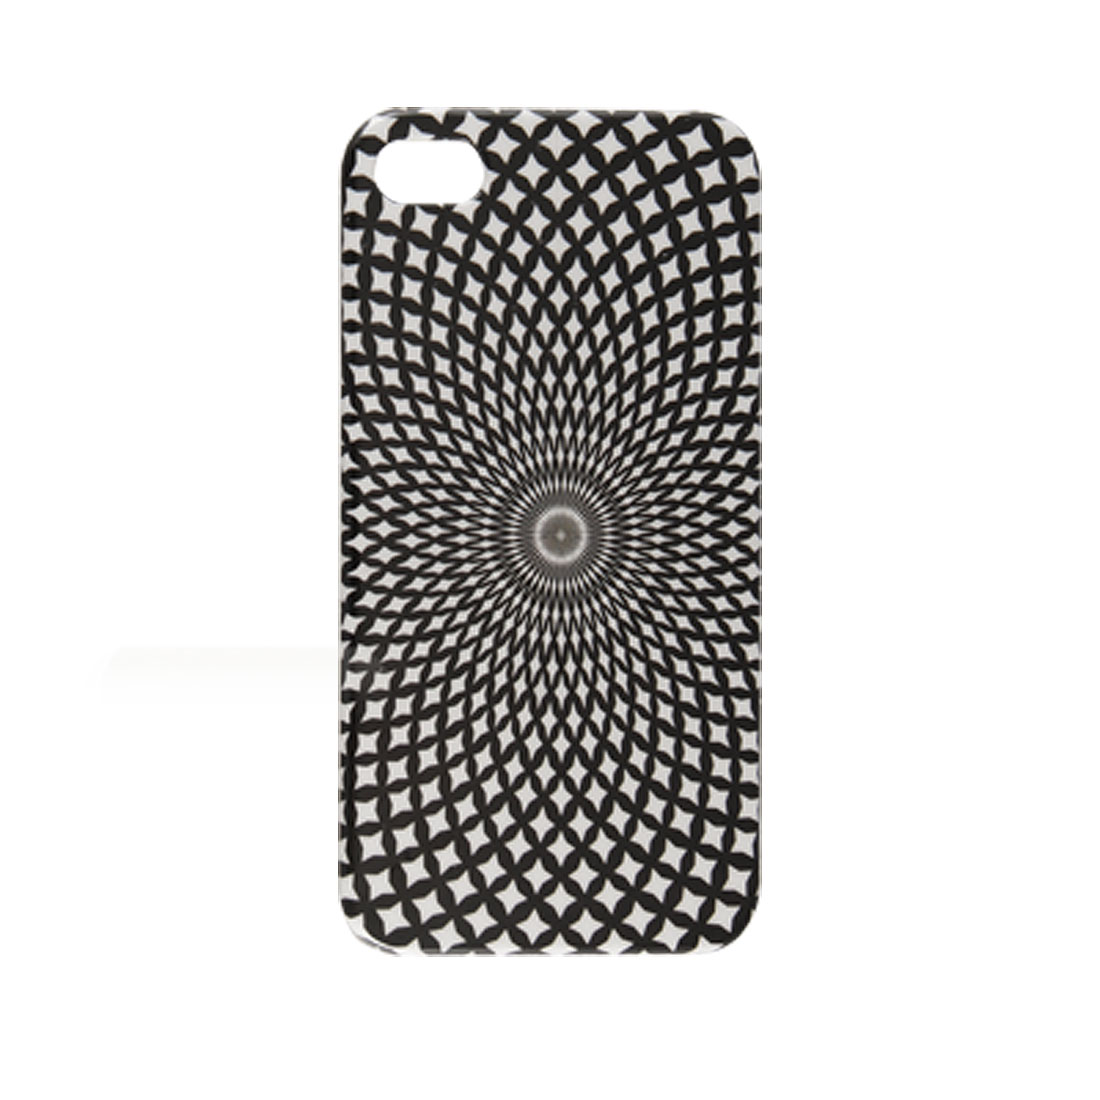 Black White Net Pattern IMD Back Protector for iPhone 4 4G